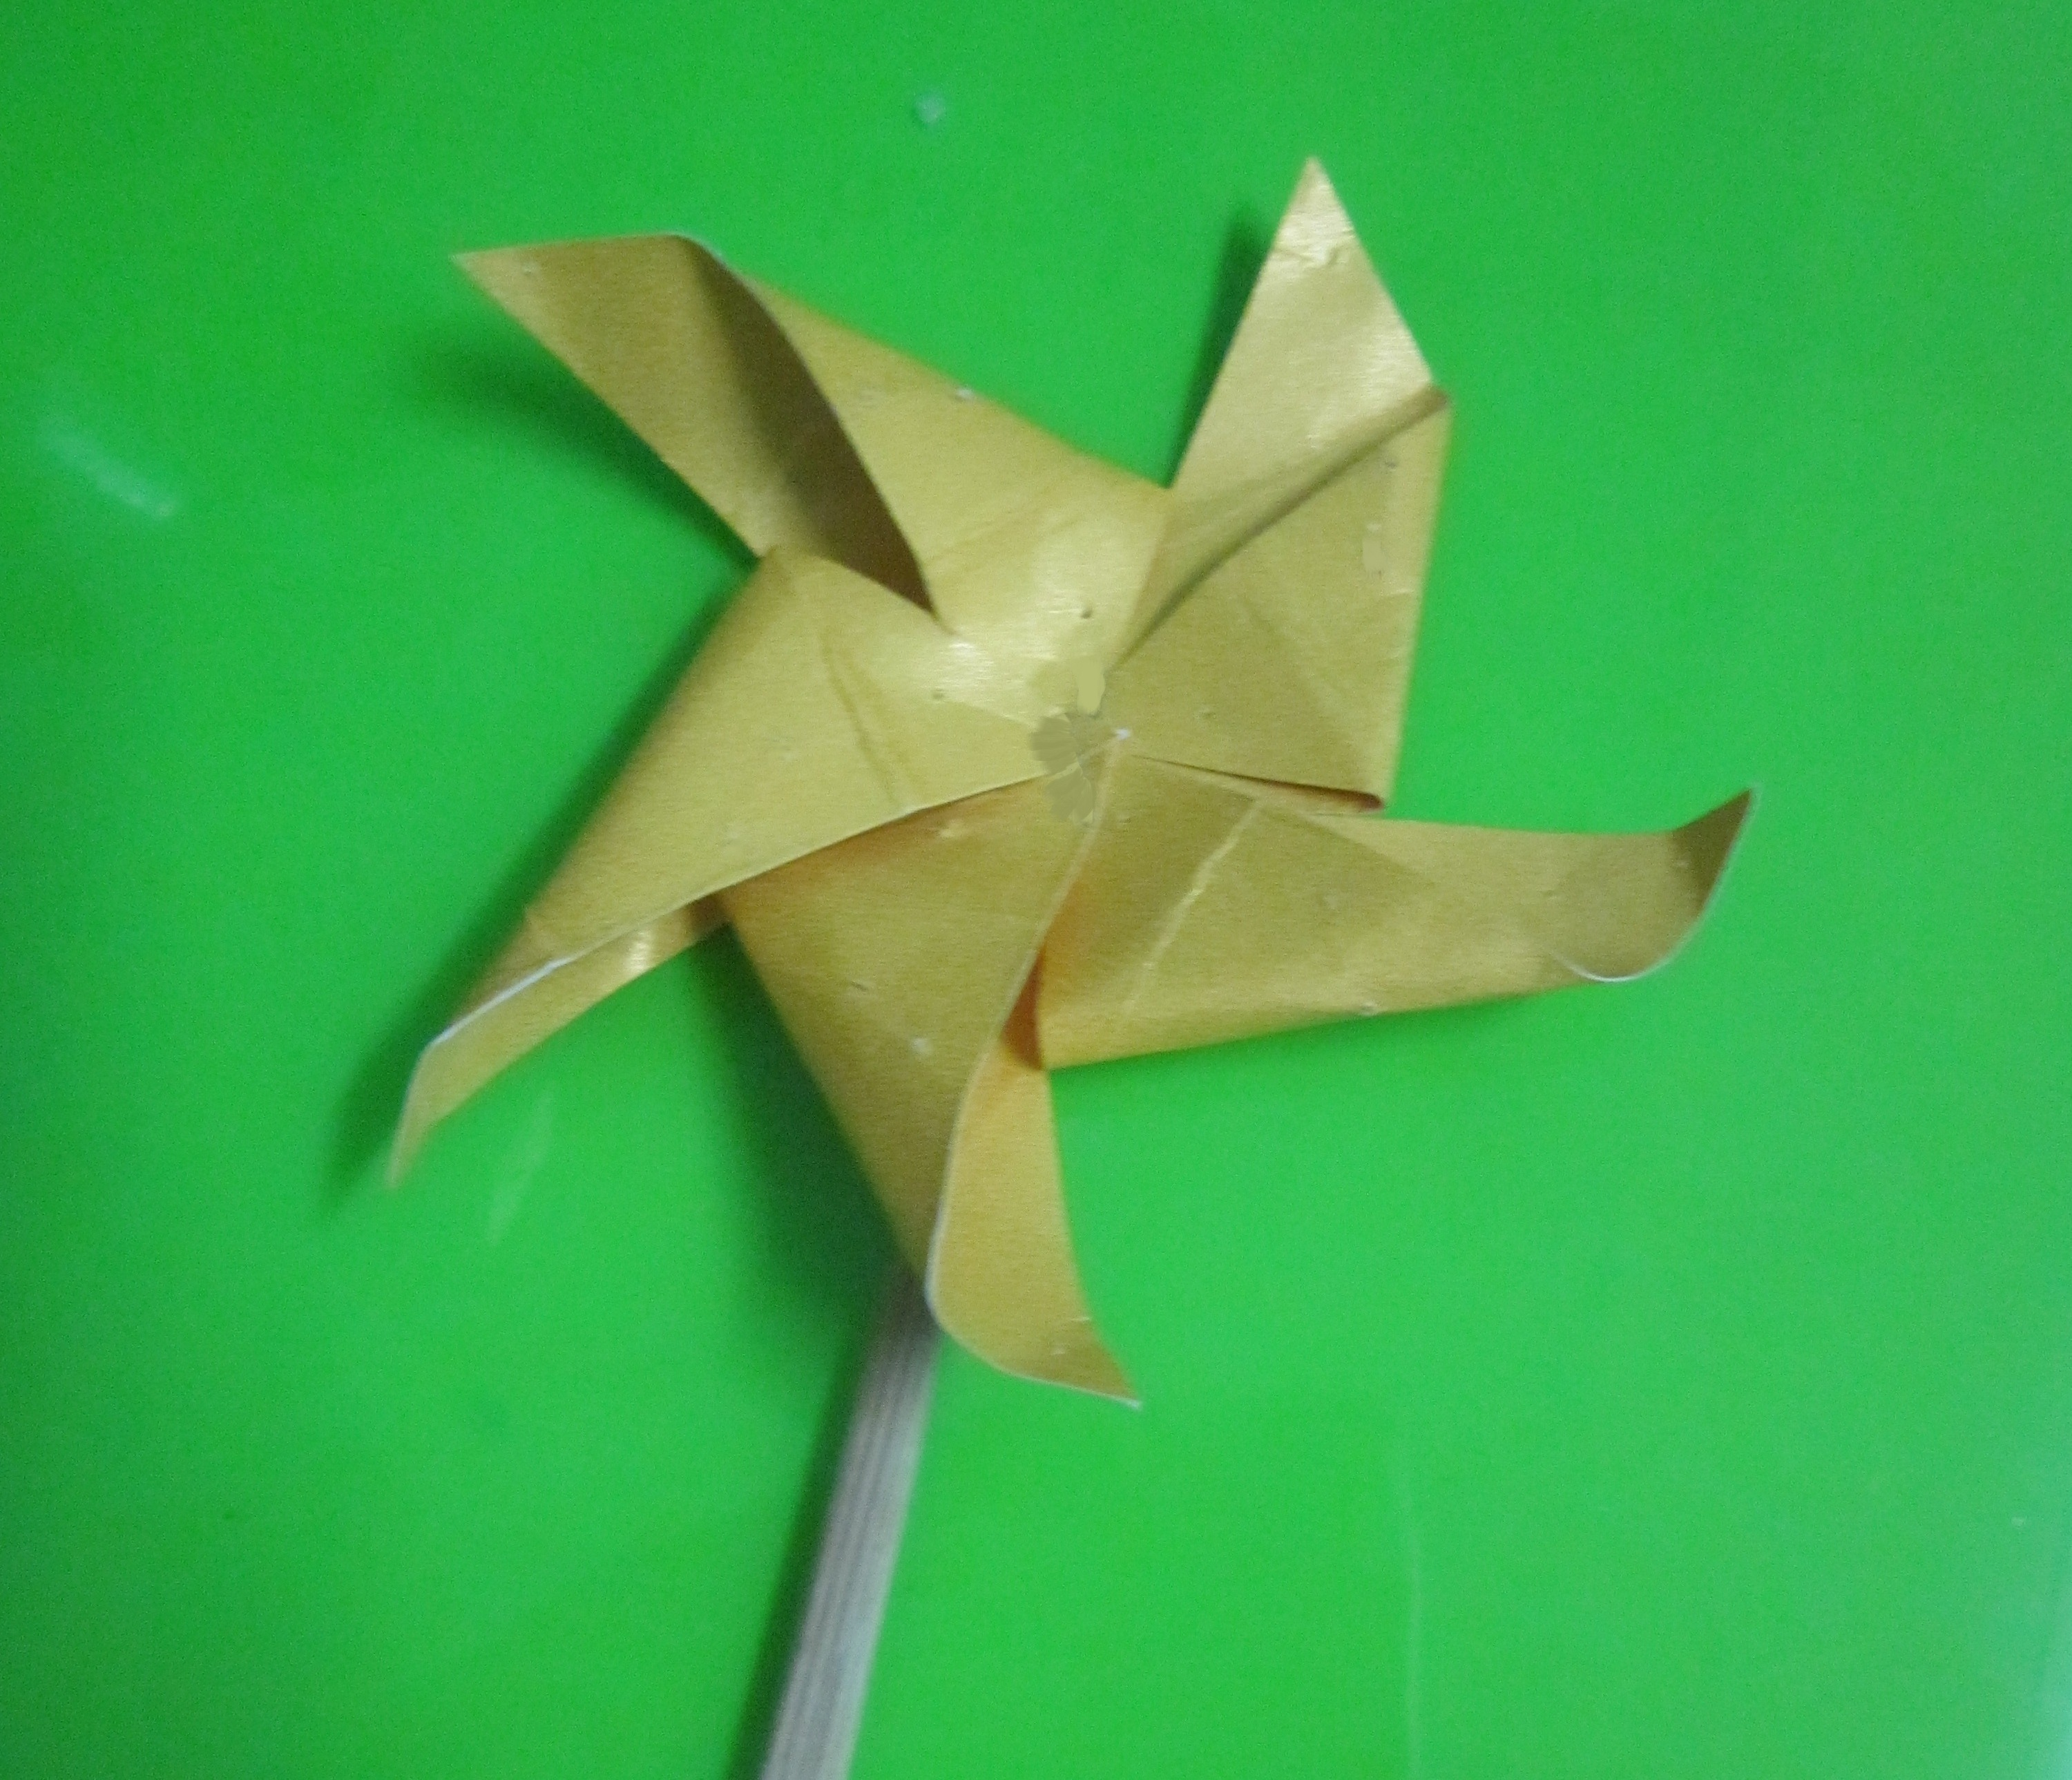 Picture of Fold It Like the Picture and Insert the Bamboo Bar Into the Pinwheel